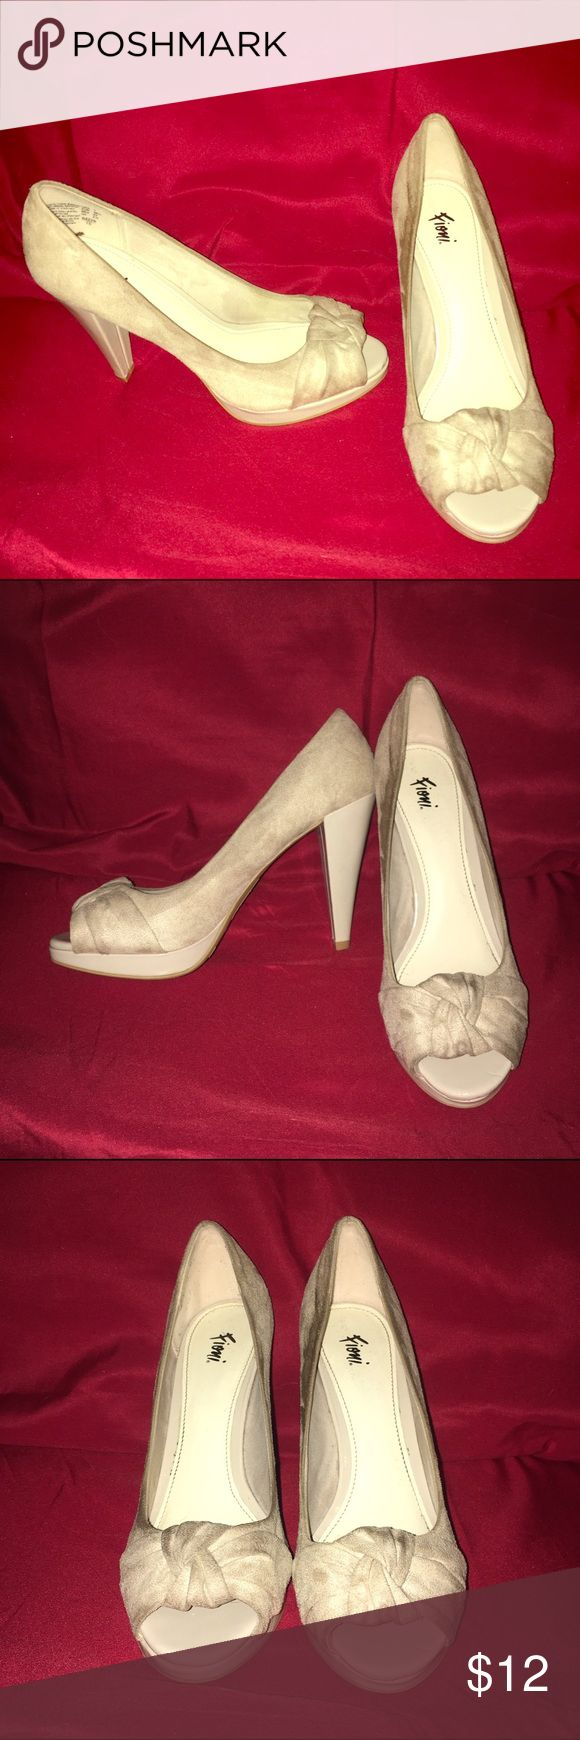 Beige Peep Toe Pumps Nice pump style shoe with peep toe. Suede material. Size 7. Signs of wear, not noticeable when wearing. FIONI Clothing Shoes Heels